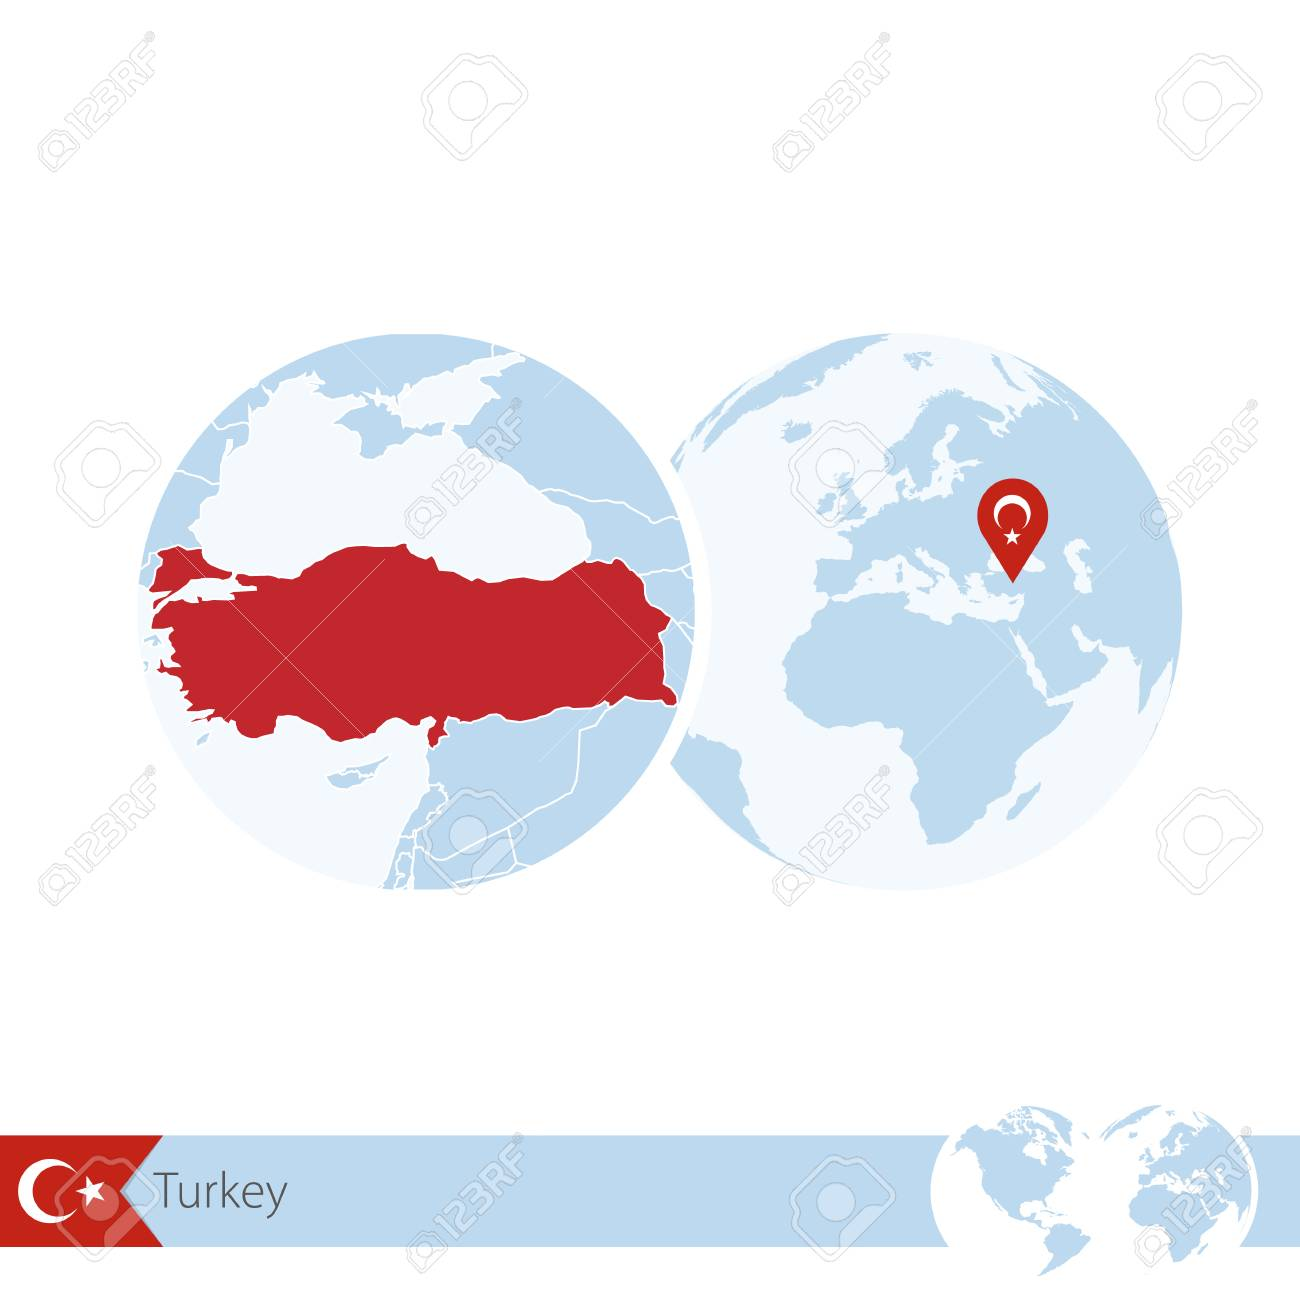 Turkey On World Globe With Flag And Regional Map Of Turkey. Vector ...